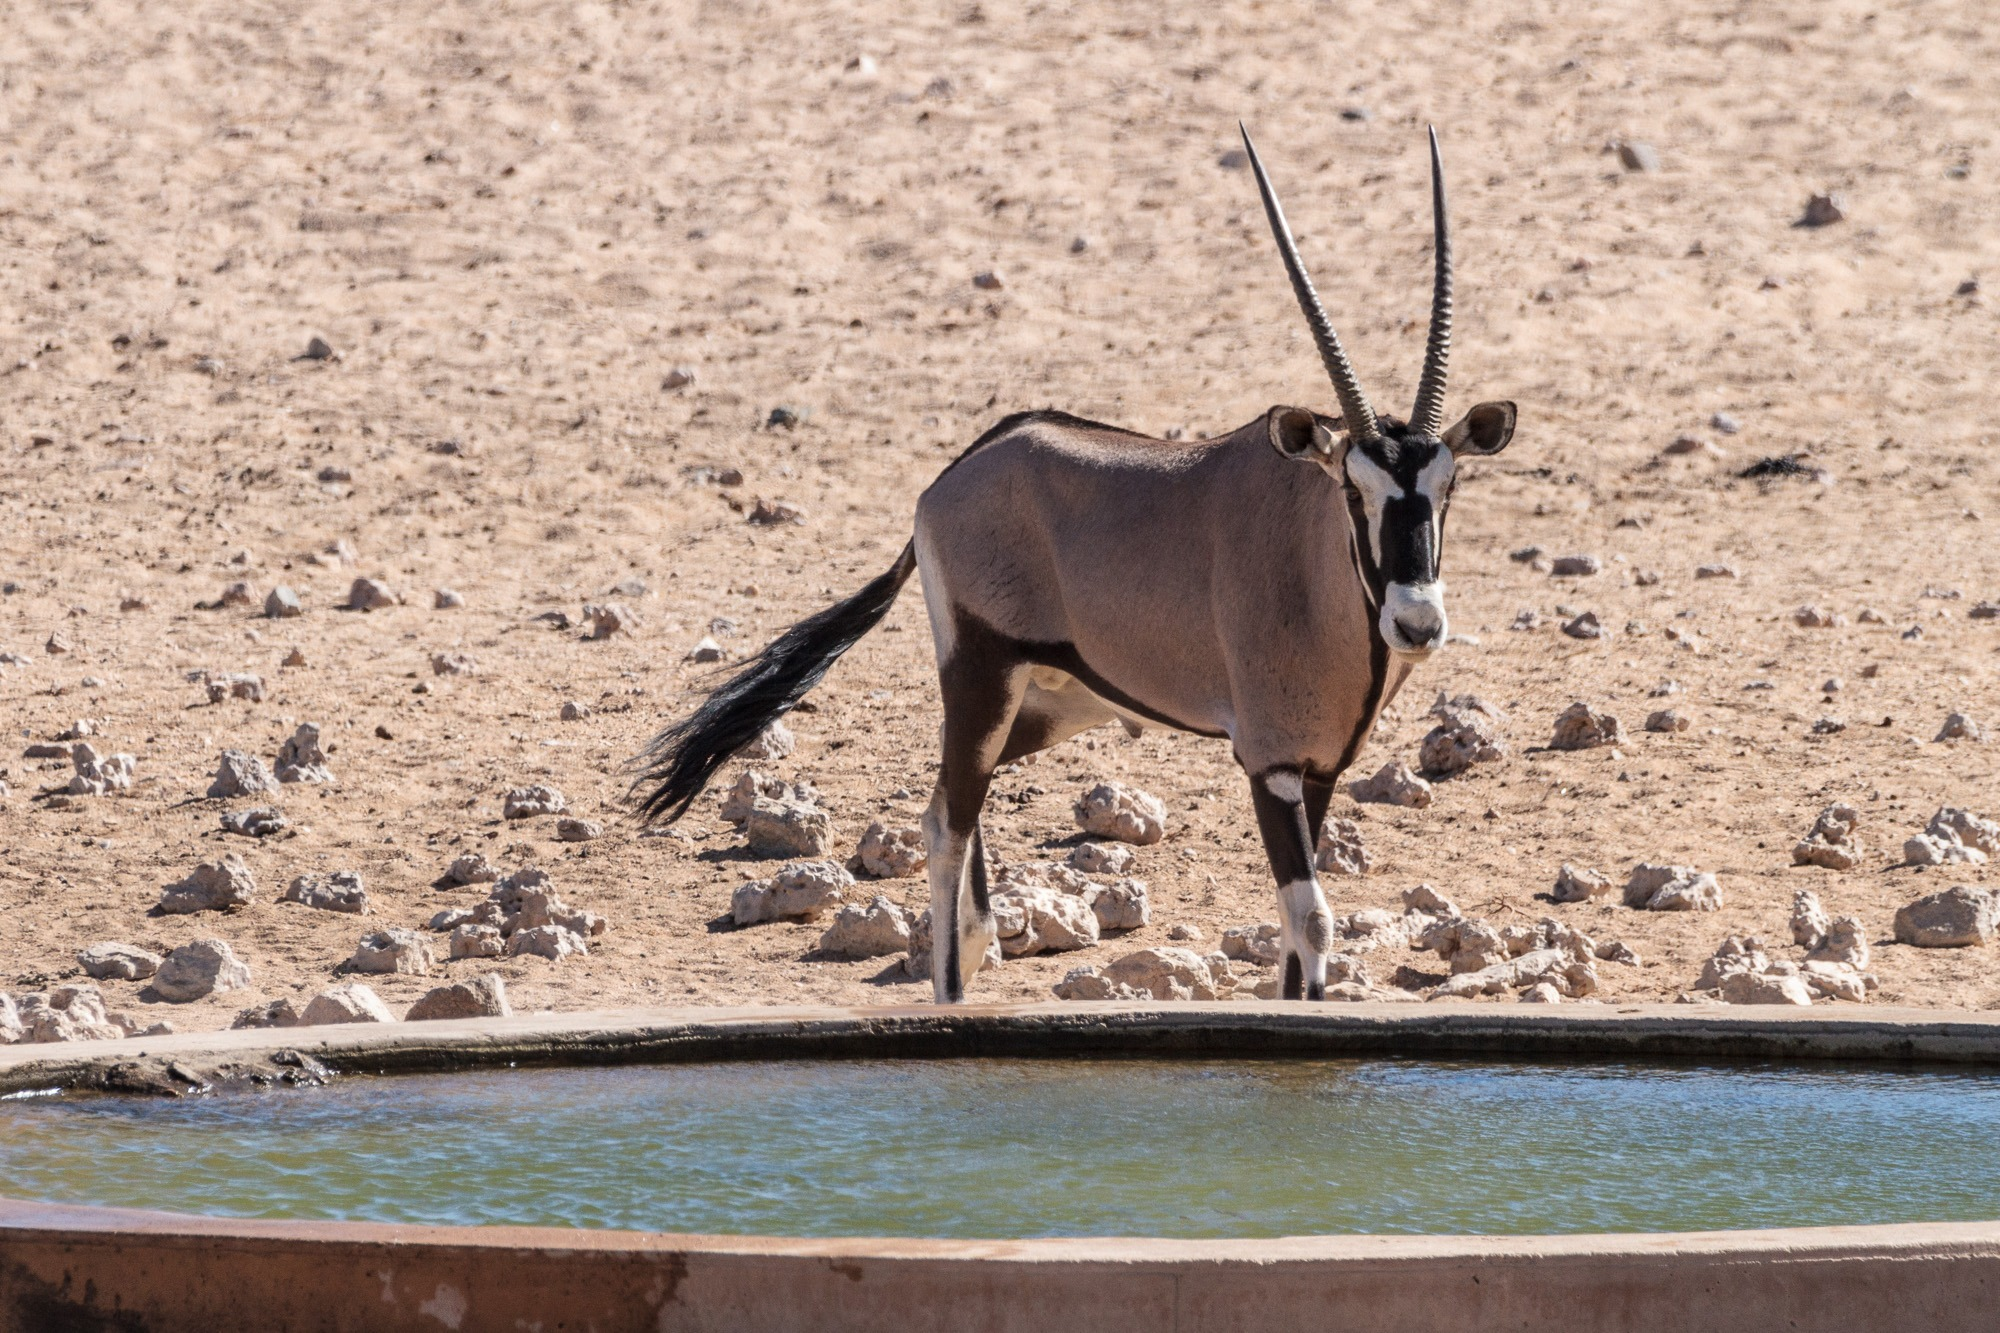 Oryx am Wasserloch in Garub in der Namib Wüste in Namibia